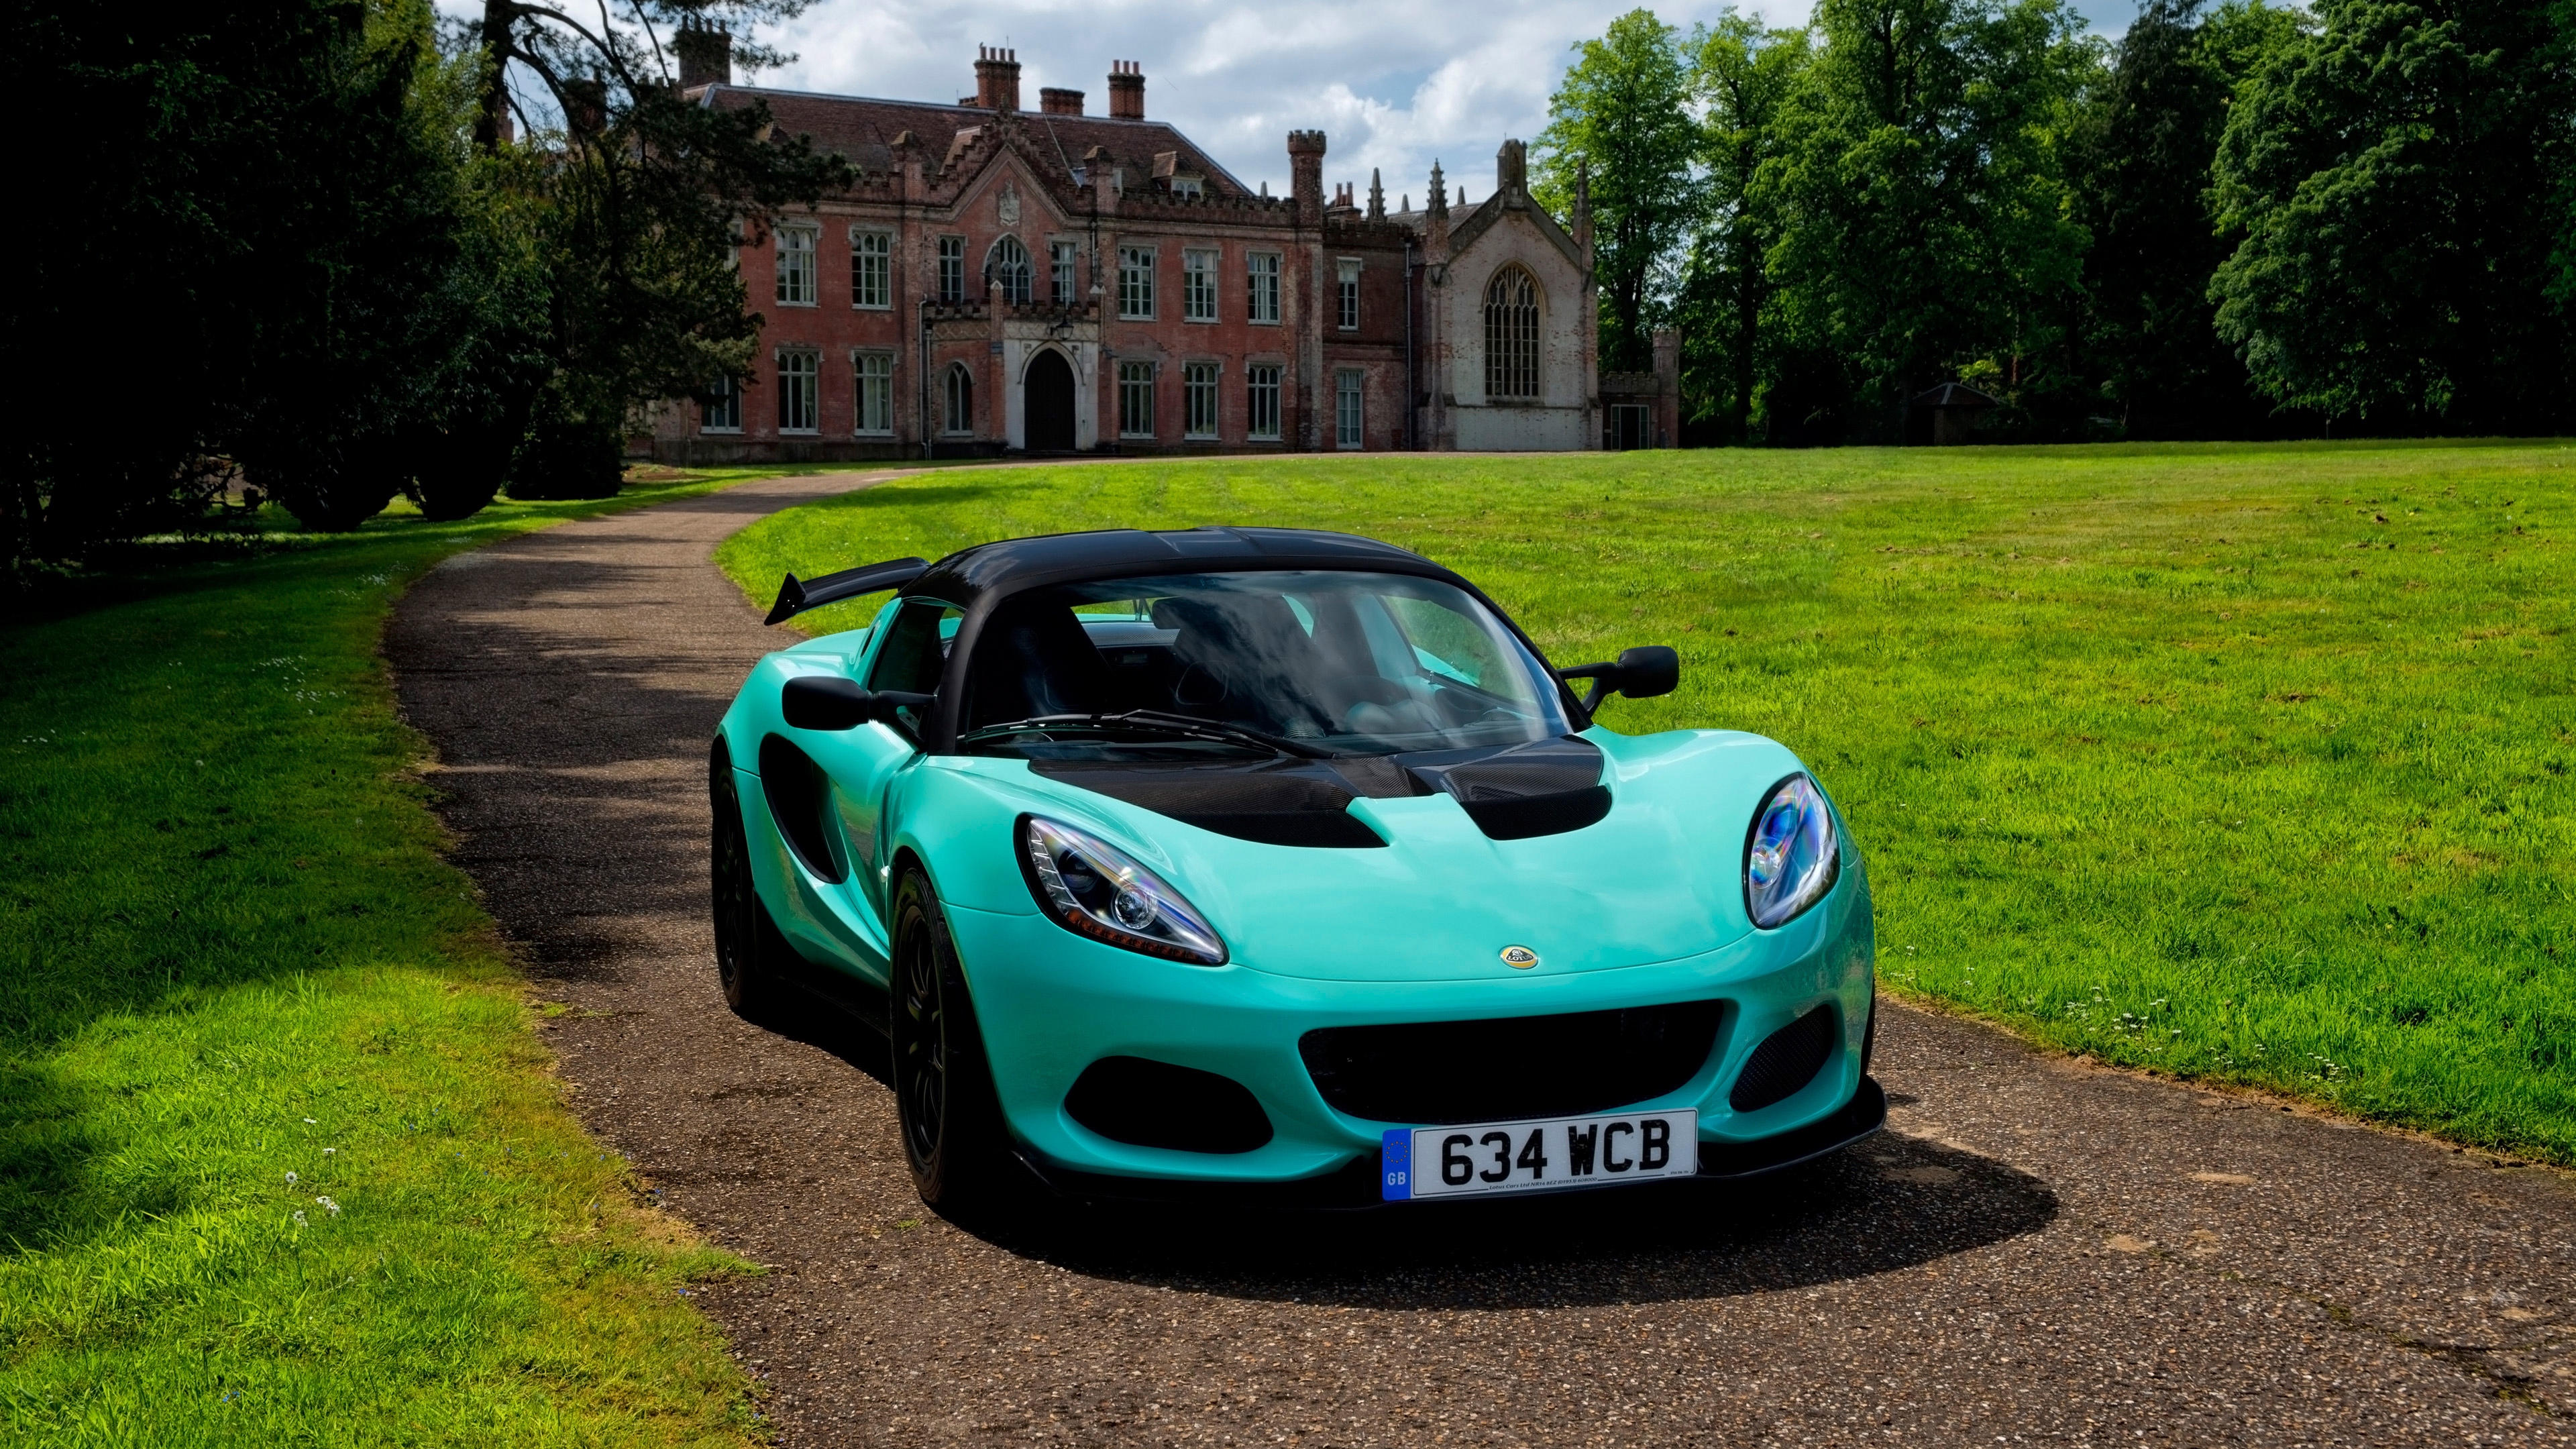 2017 Lotus Elise Cup 250 4K Wallpaper | HD Car Wallpapers